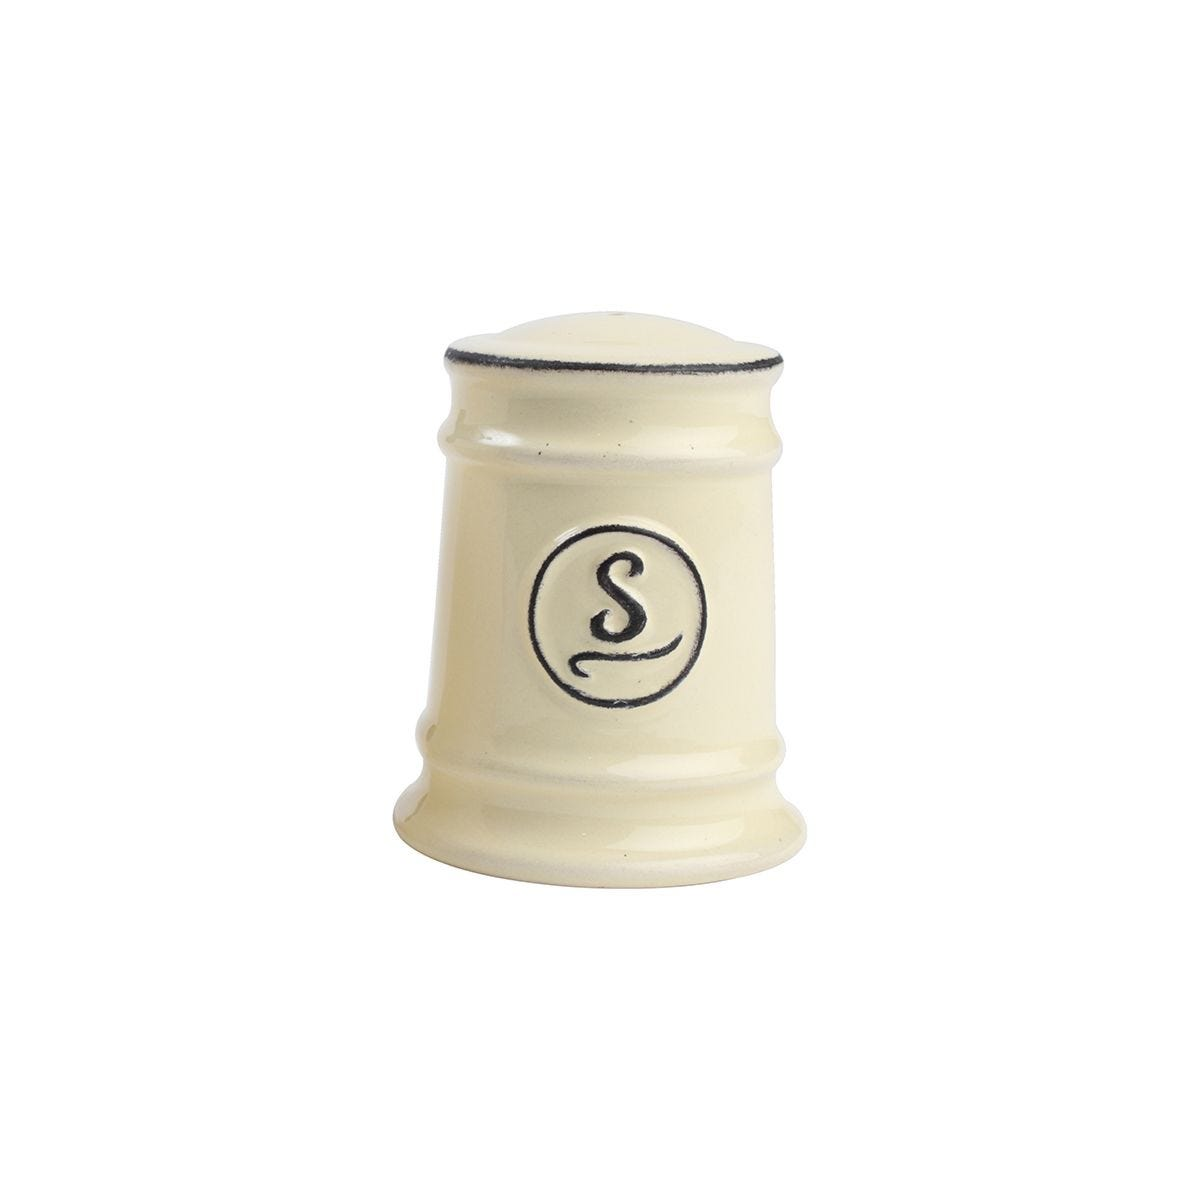 T&G Pride Of Place Salt Shaker - Old Cream